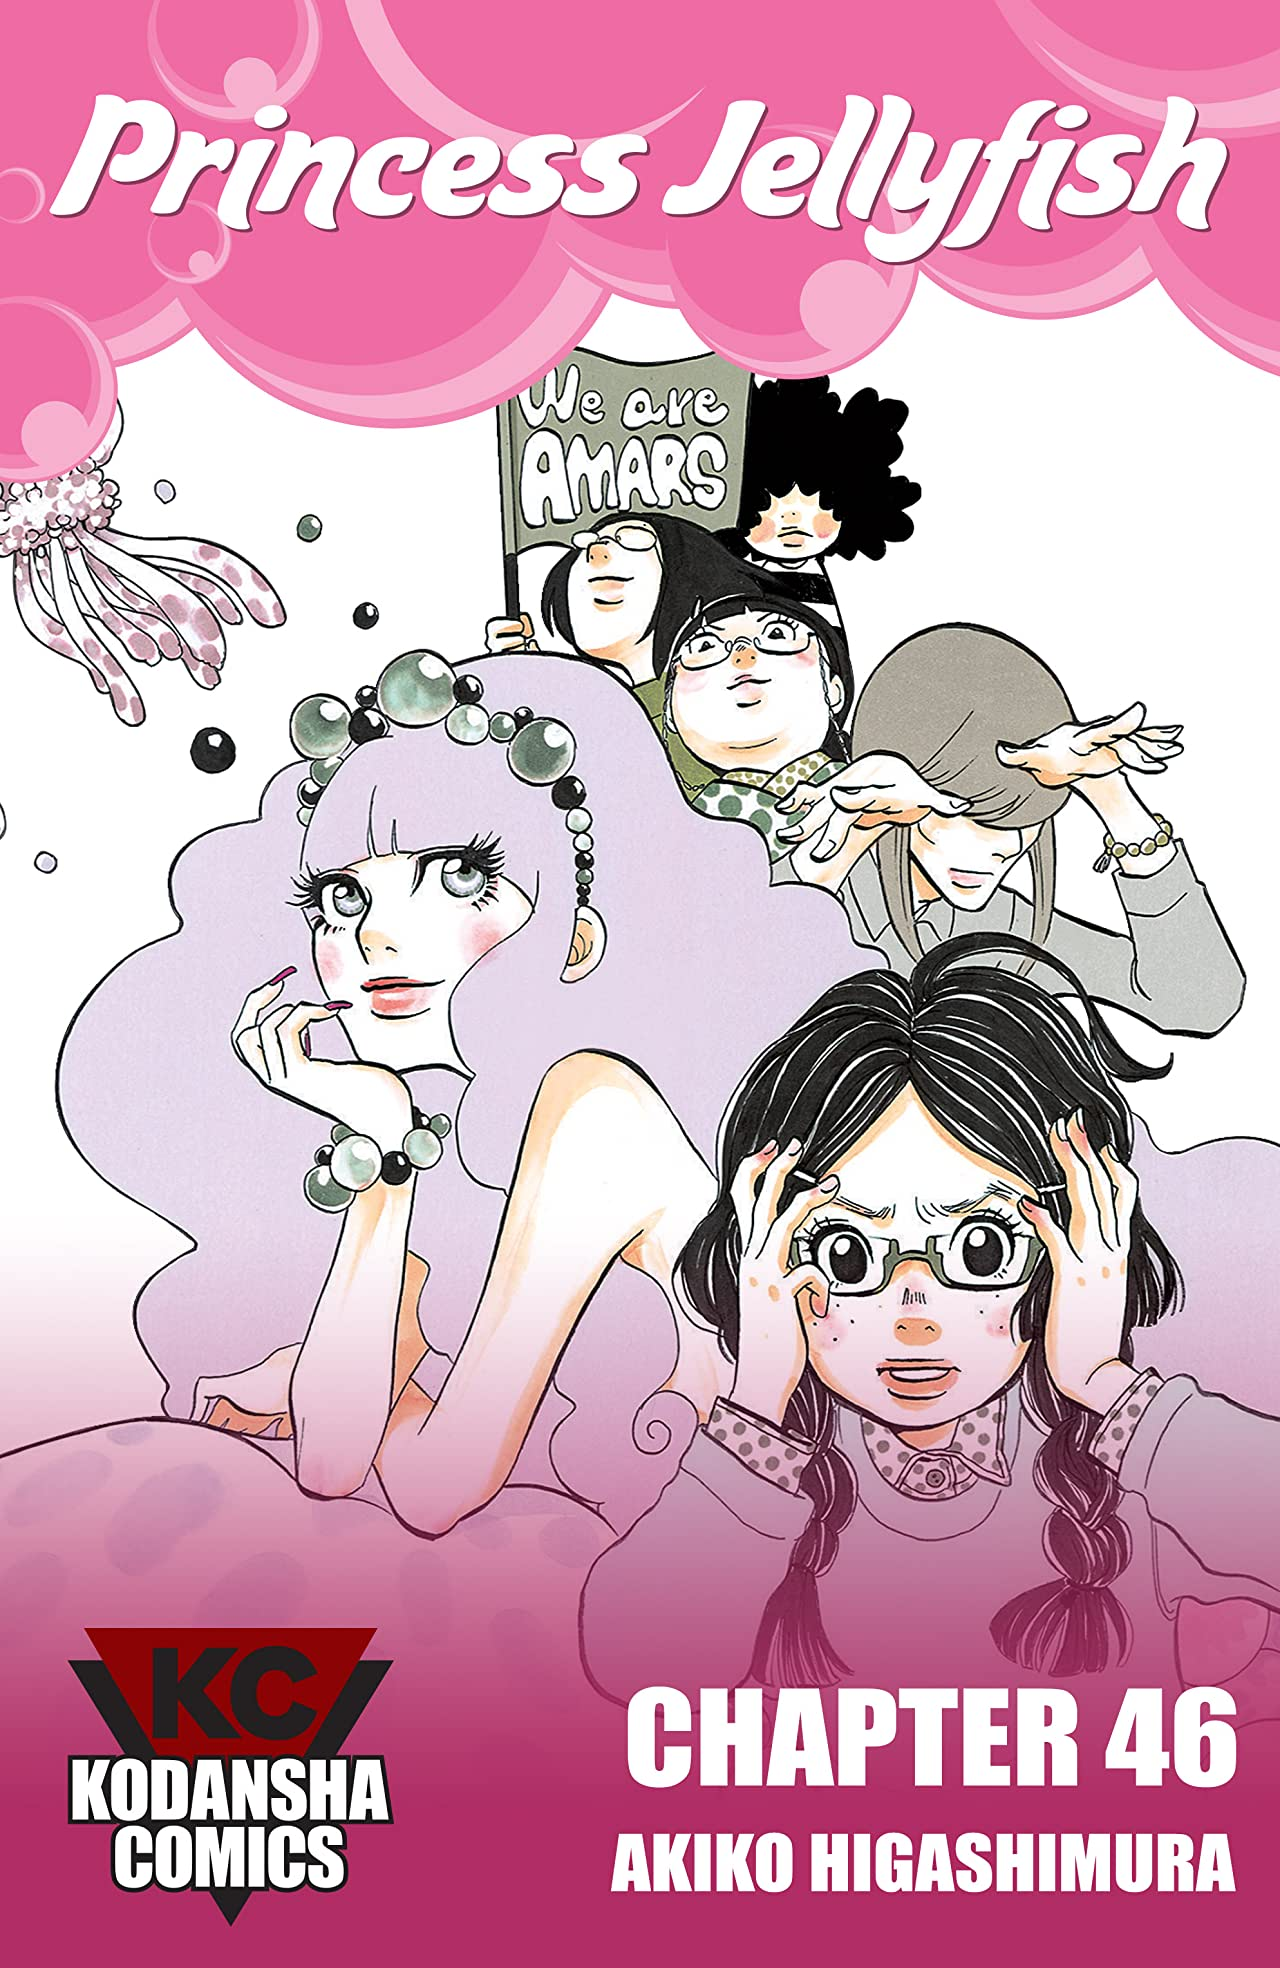 Princess Jellyfish #46